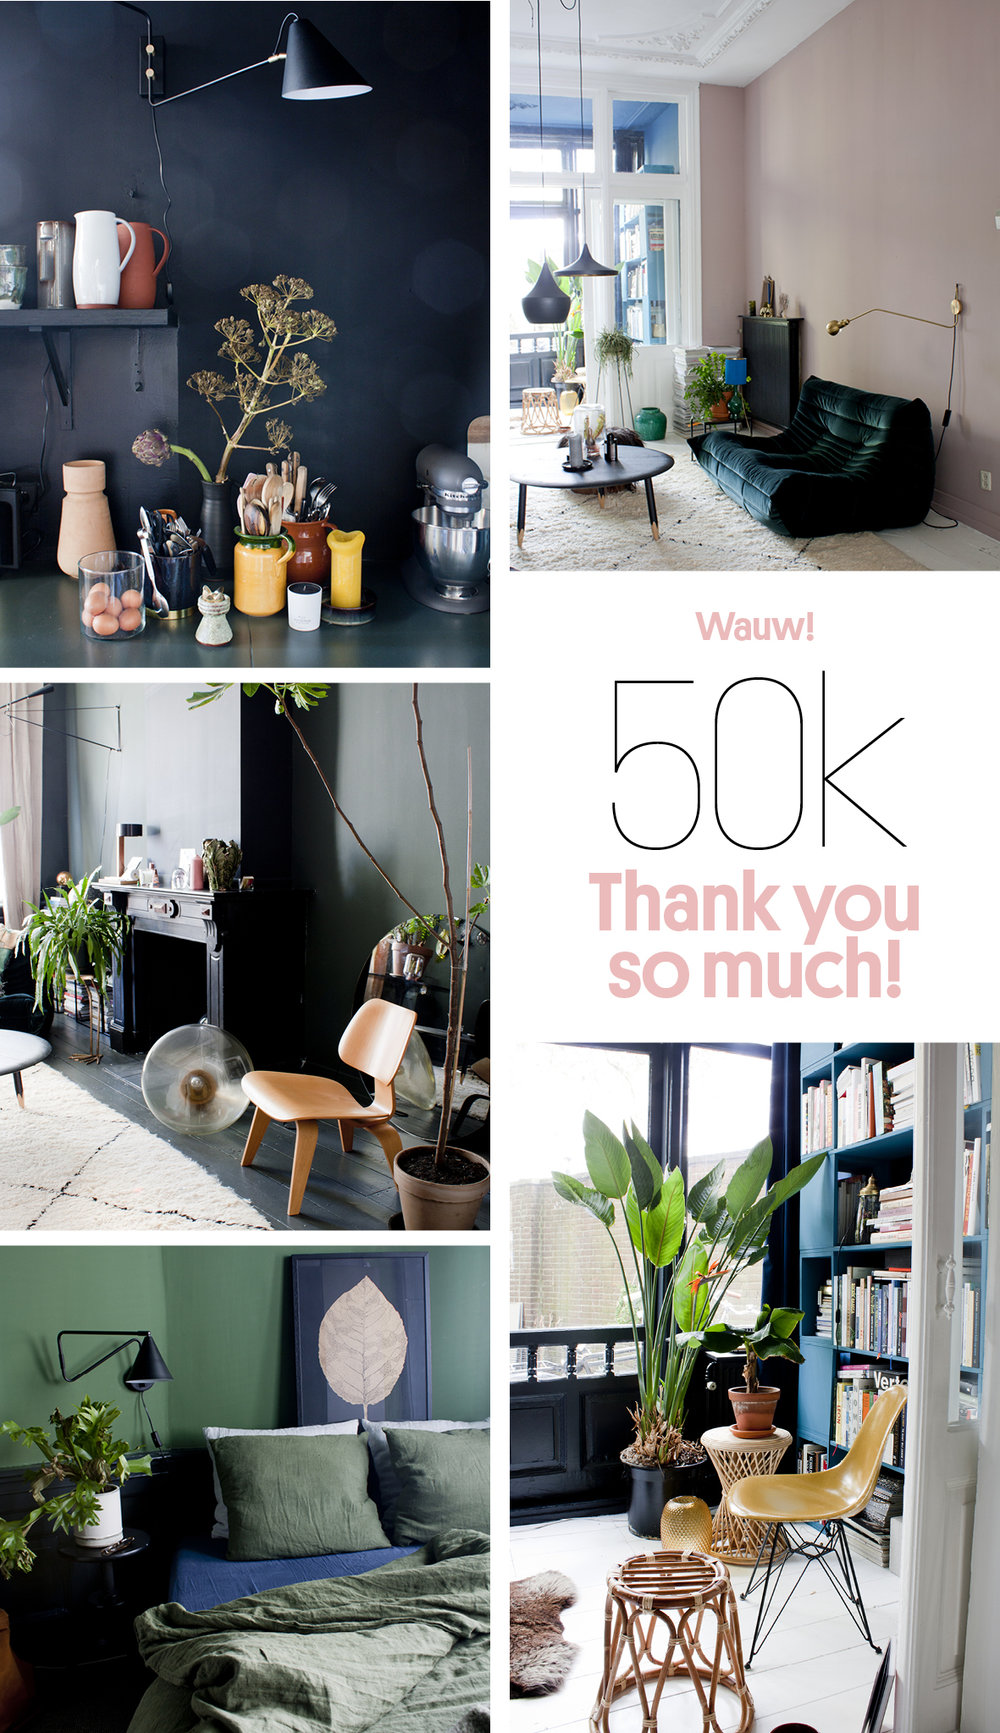 THE NICE STUFF COLLECTOR INTERIOR BLOGGER INTERIEUR BLOGGER THEO-BERT POT INSTAGRAM